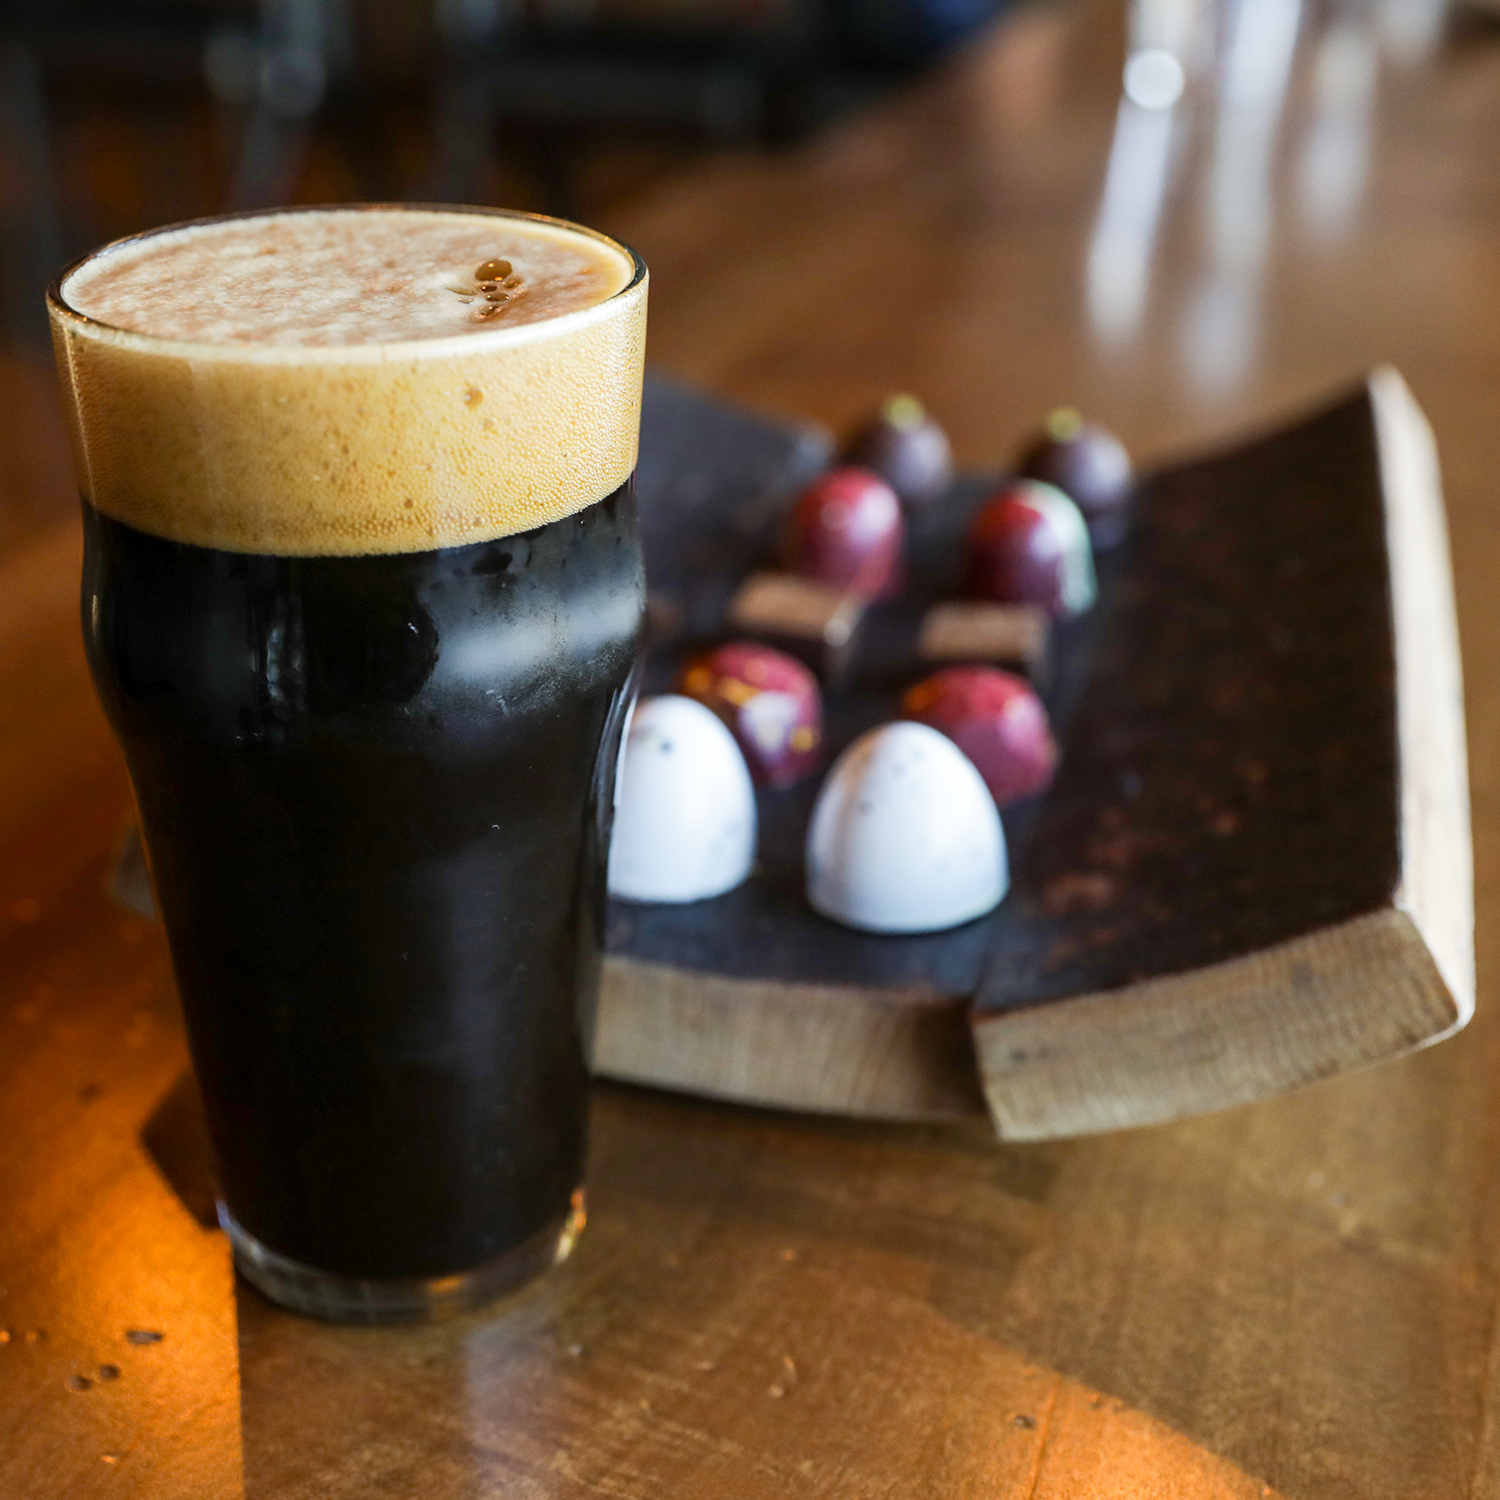 Founders Breakfast Stout with pieces of chocolate on the bar